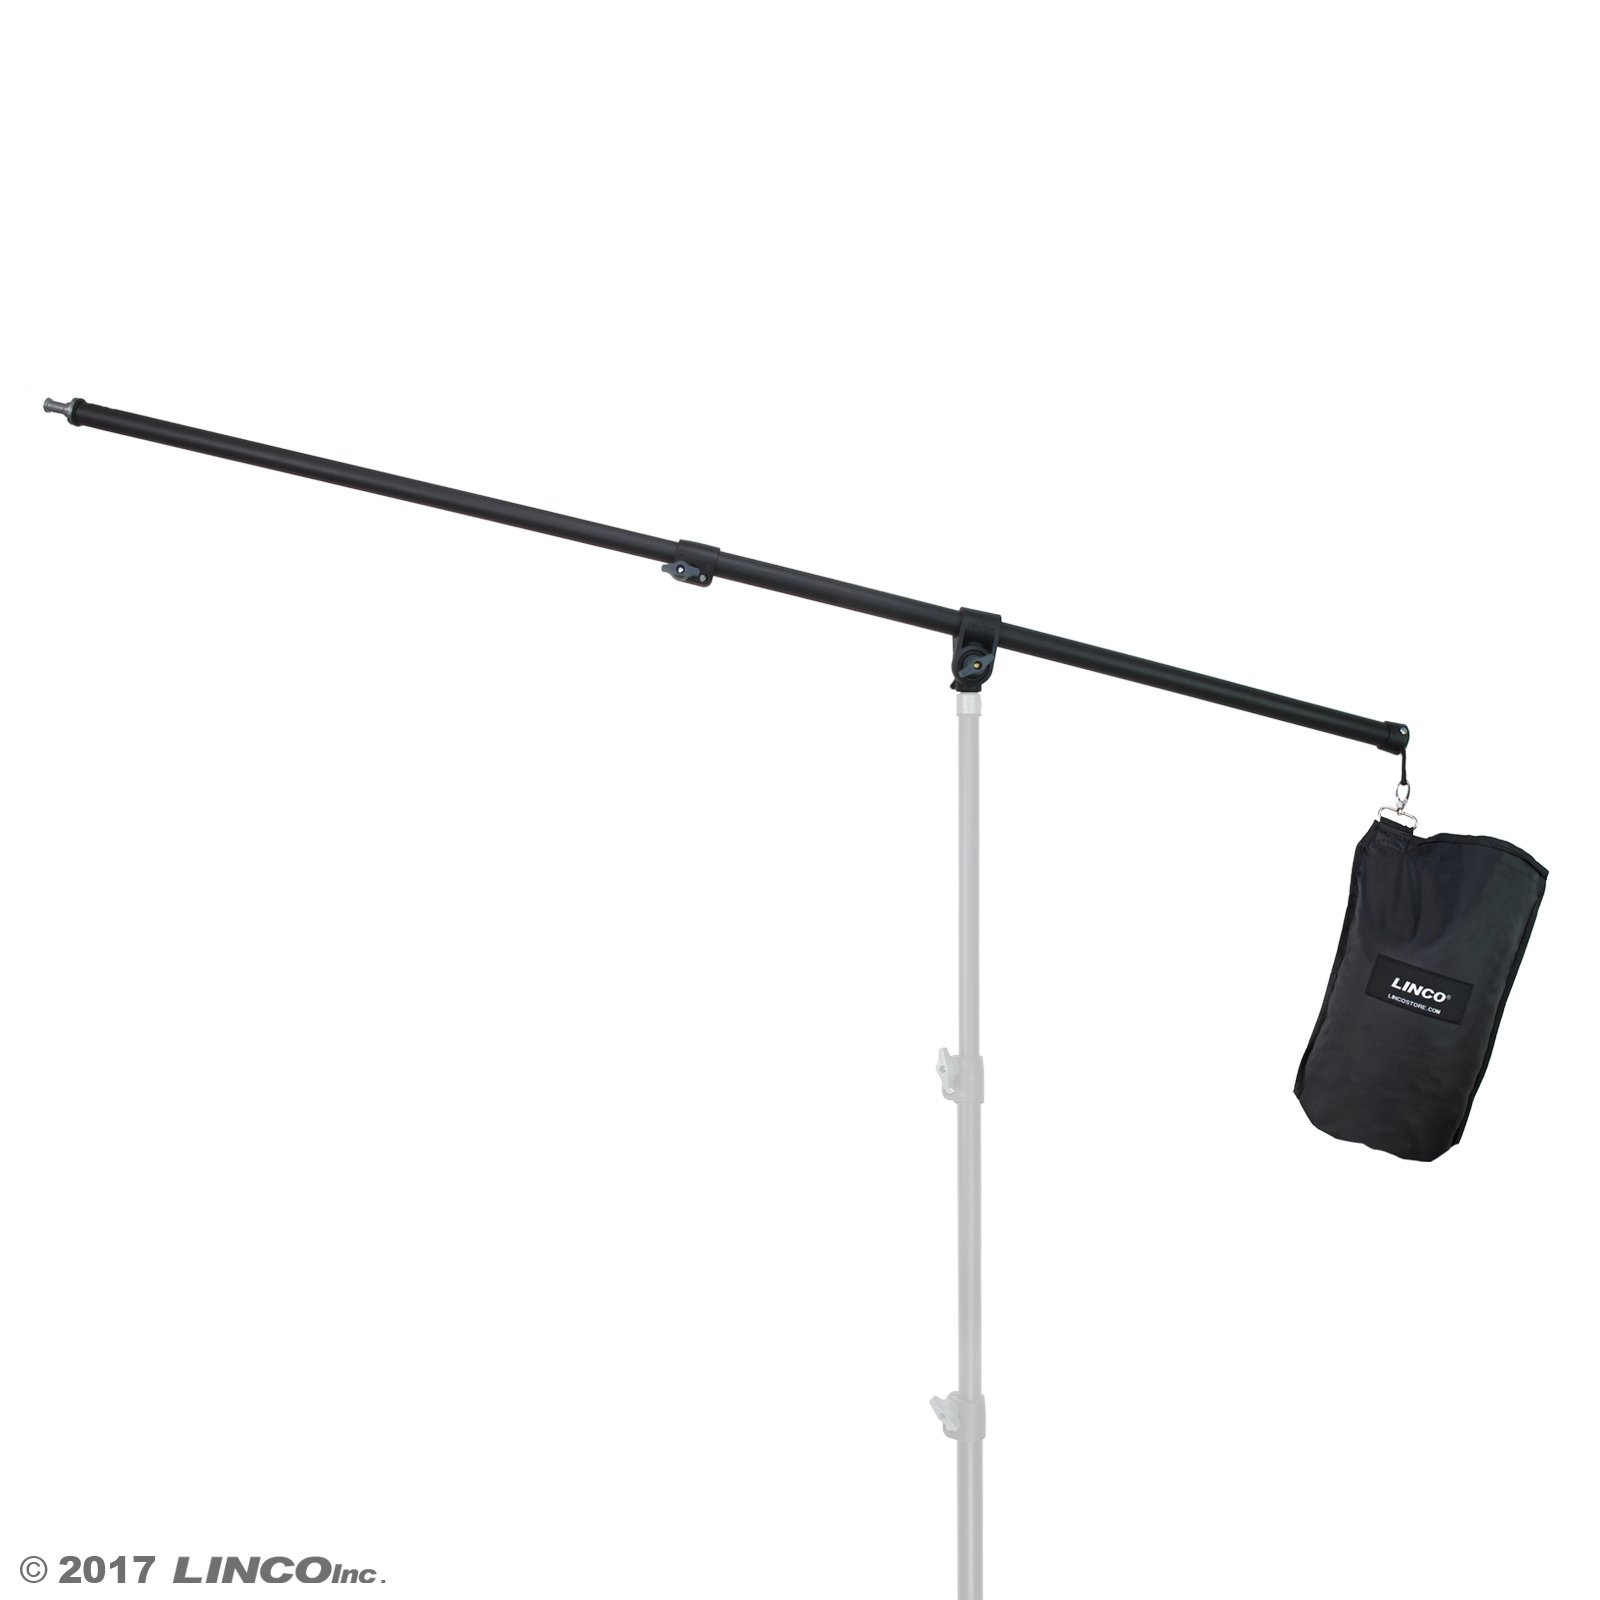 Linco Lincostore 2.5ft to 5ft Adjustable Overhead Light Boom Arm with Universal Tripod Clamp & Counter-Weight Bag 4255K by Linco